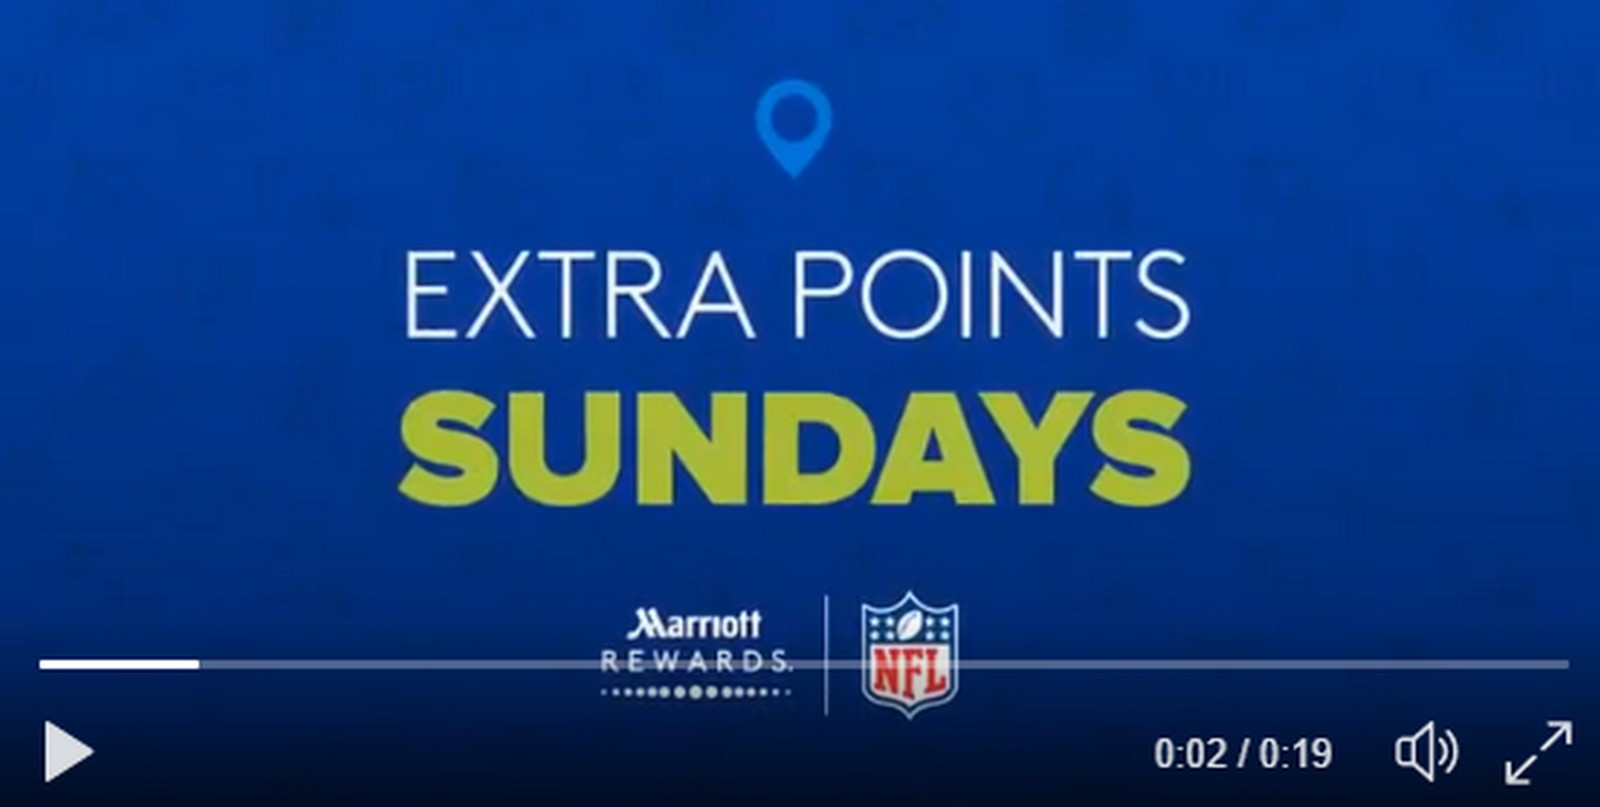 Earn 1,500 Marriott Points Via Twitter During Super Bowl